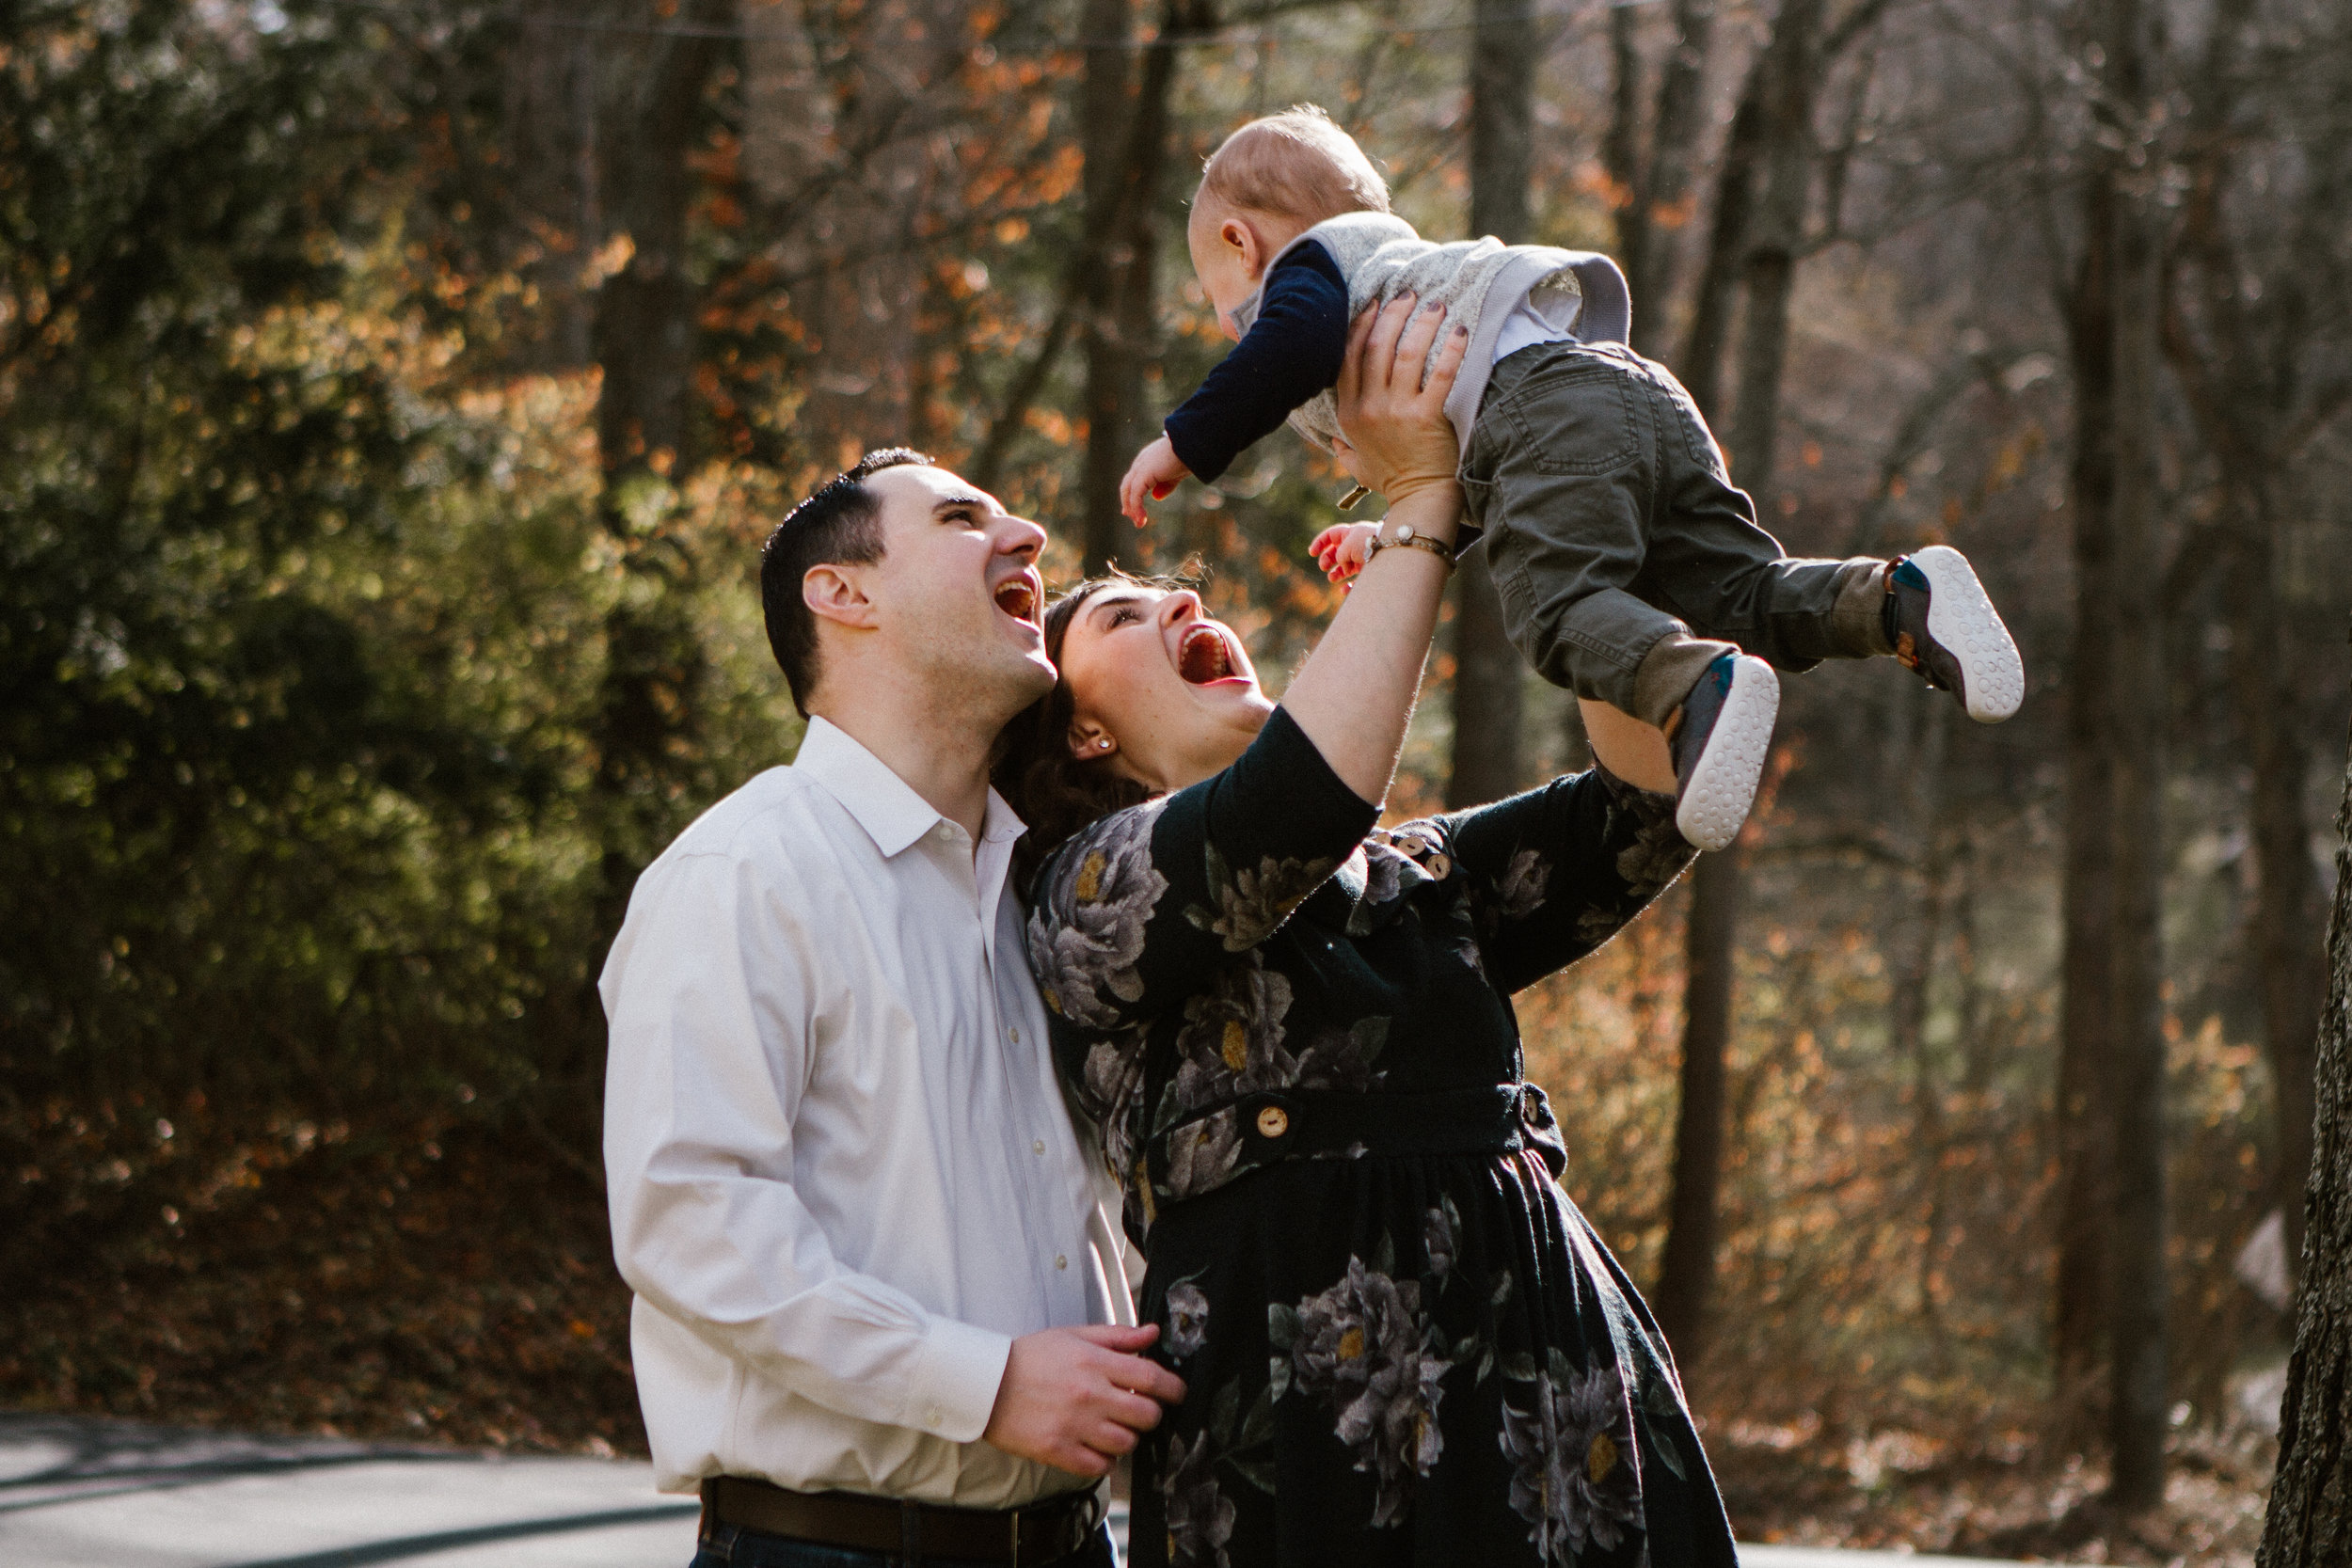 Documentary Family Photography Wilton Connecticut Fairfield County New Haven Hartford Litchfield Duxbury Scituate Cohasset Cape Cod Massachusetts New England Photographer Shannon Sorensen